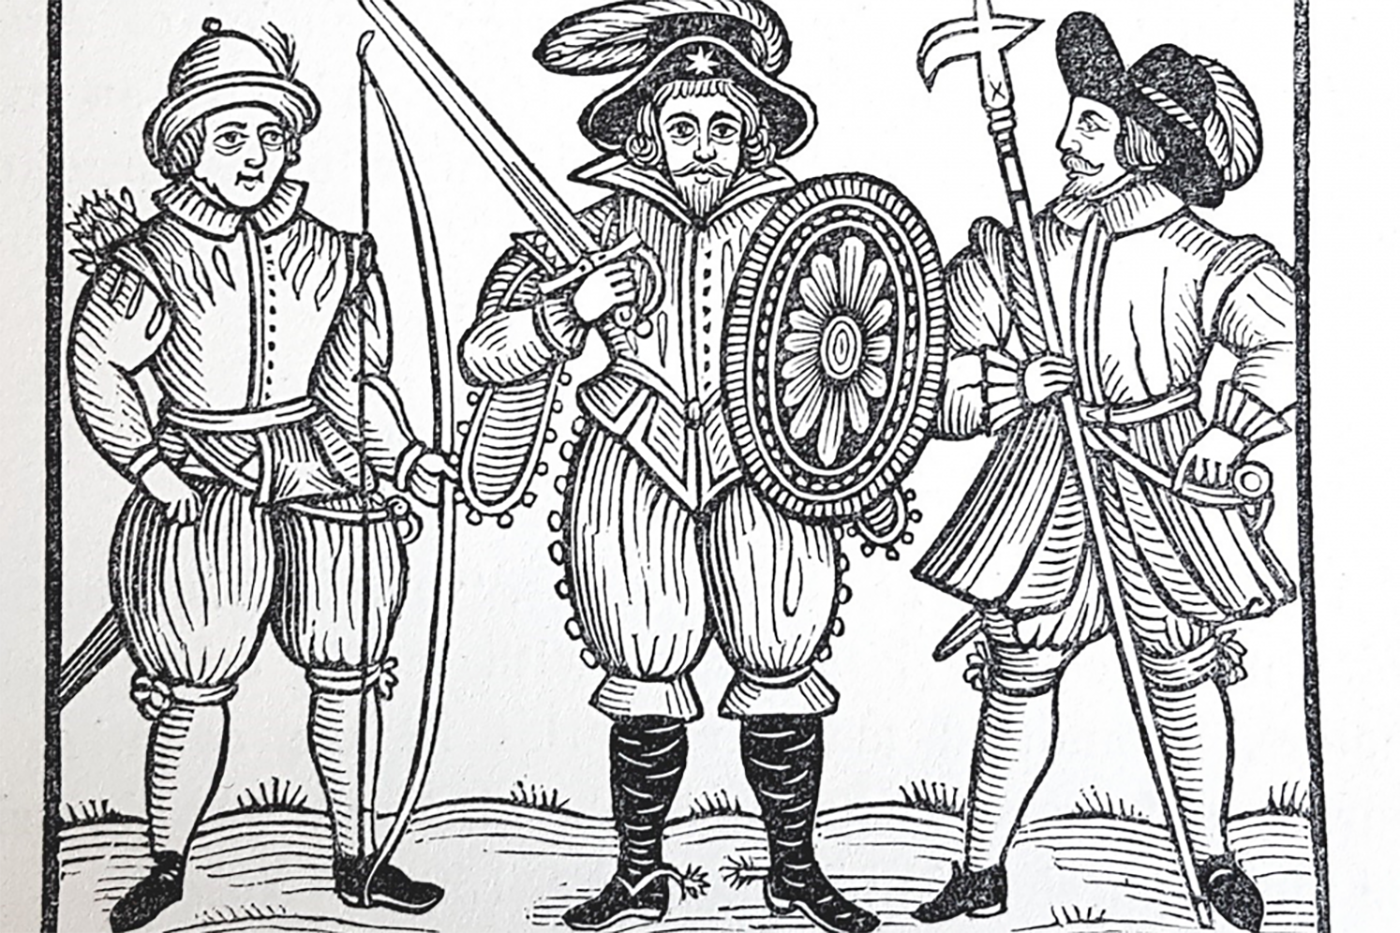 Engraved print of Robin Hood and two men holding weapons